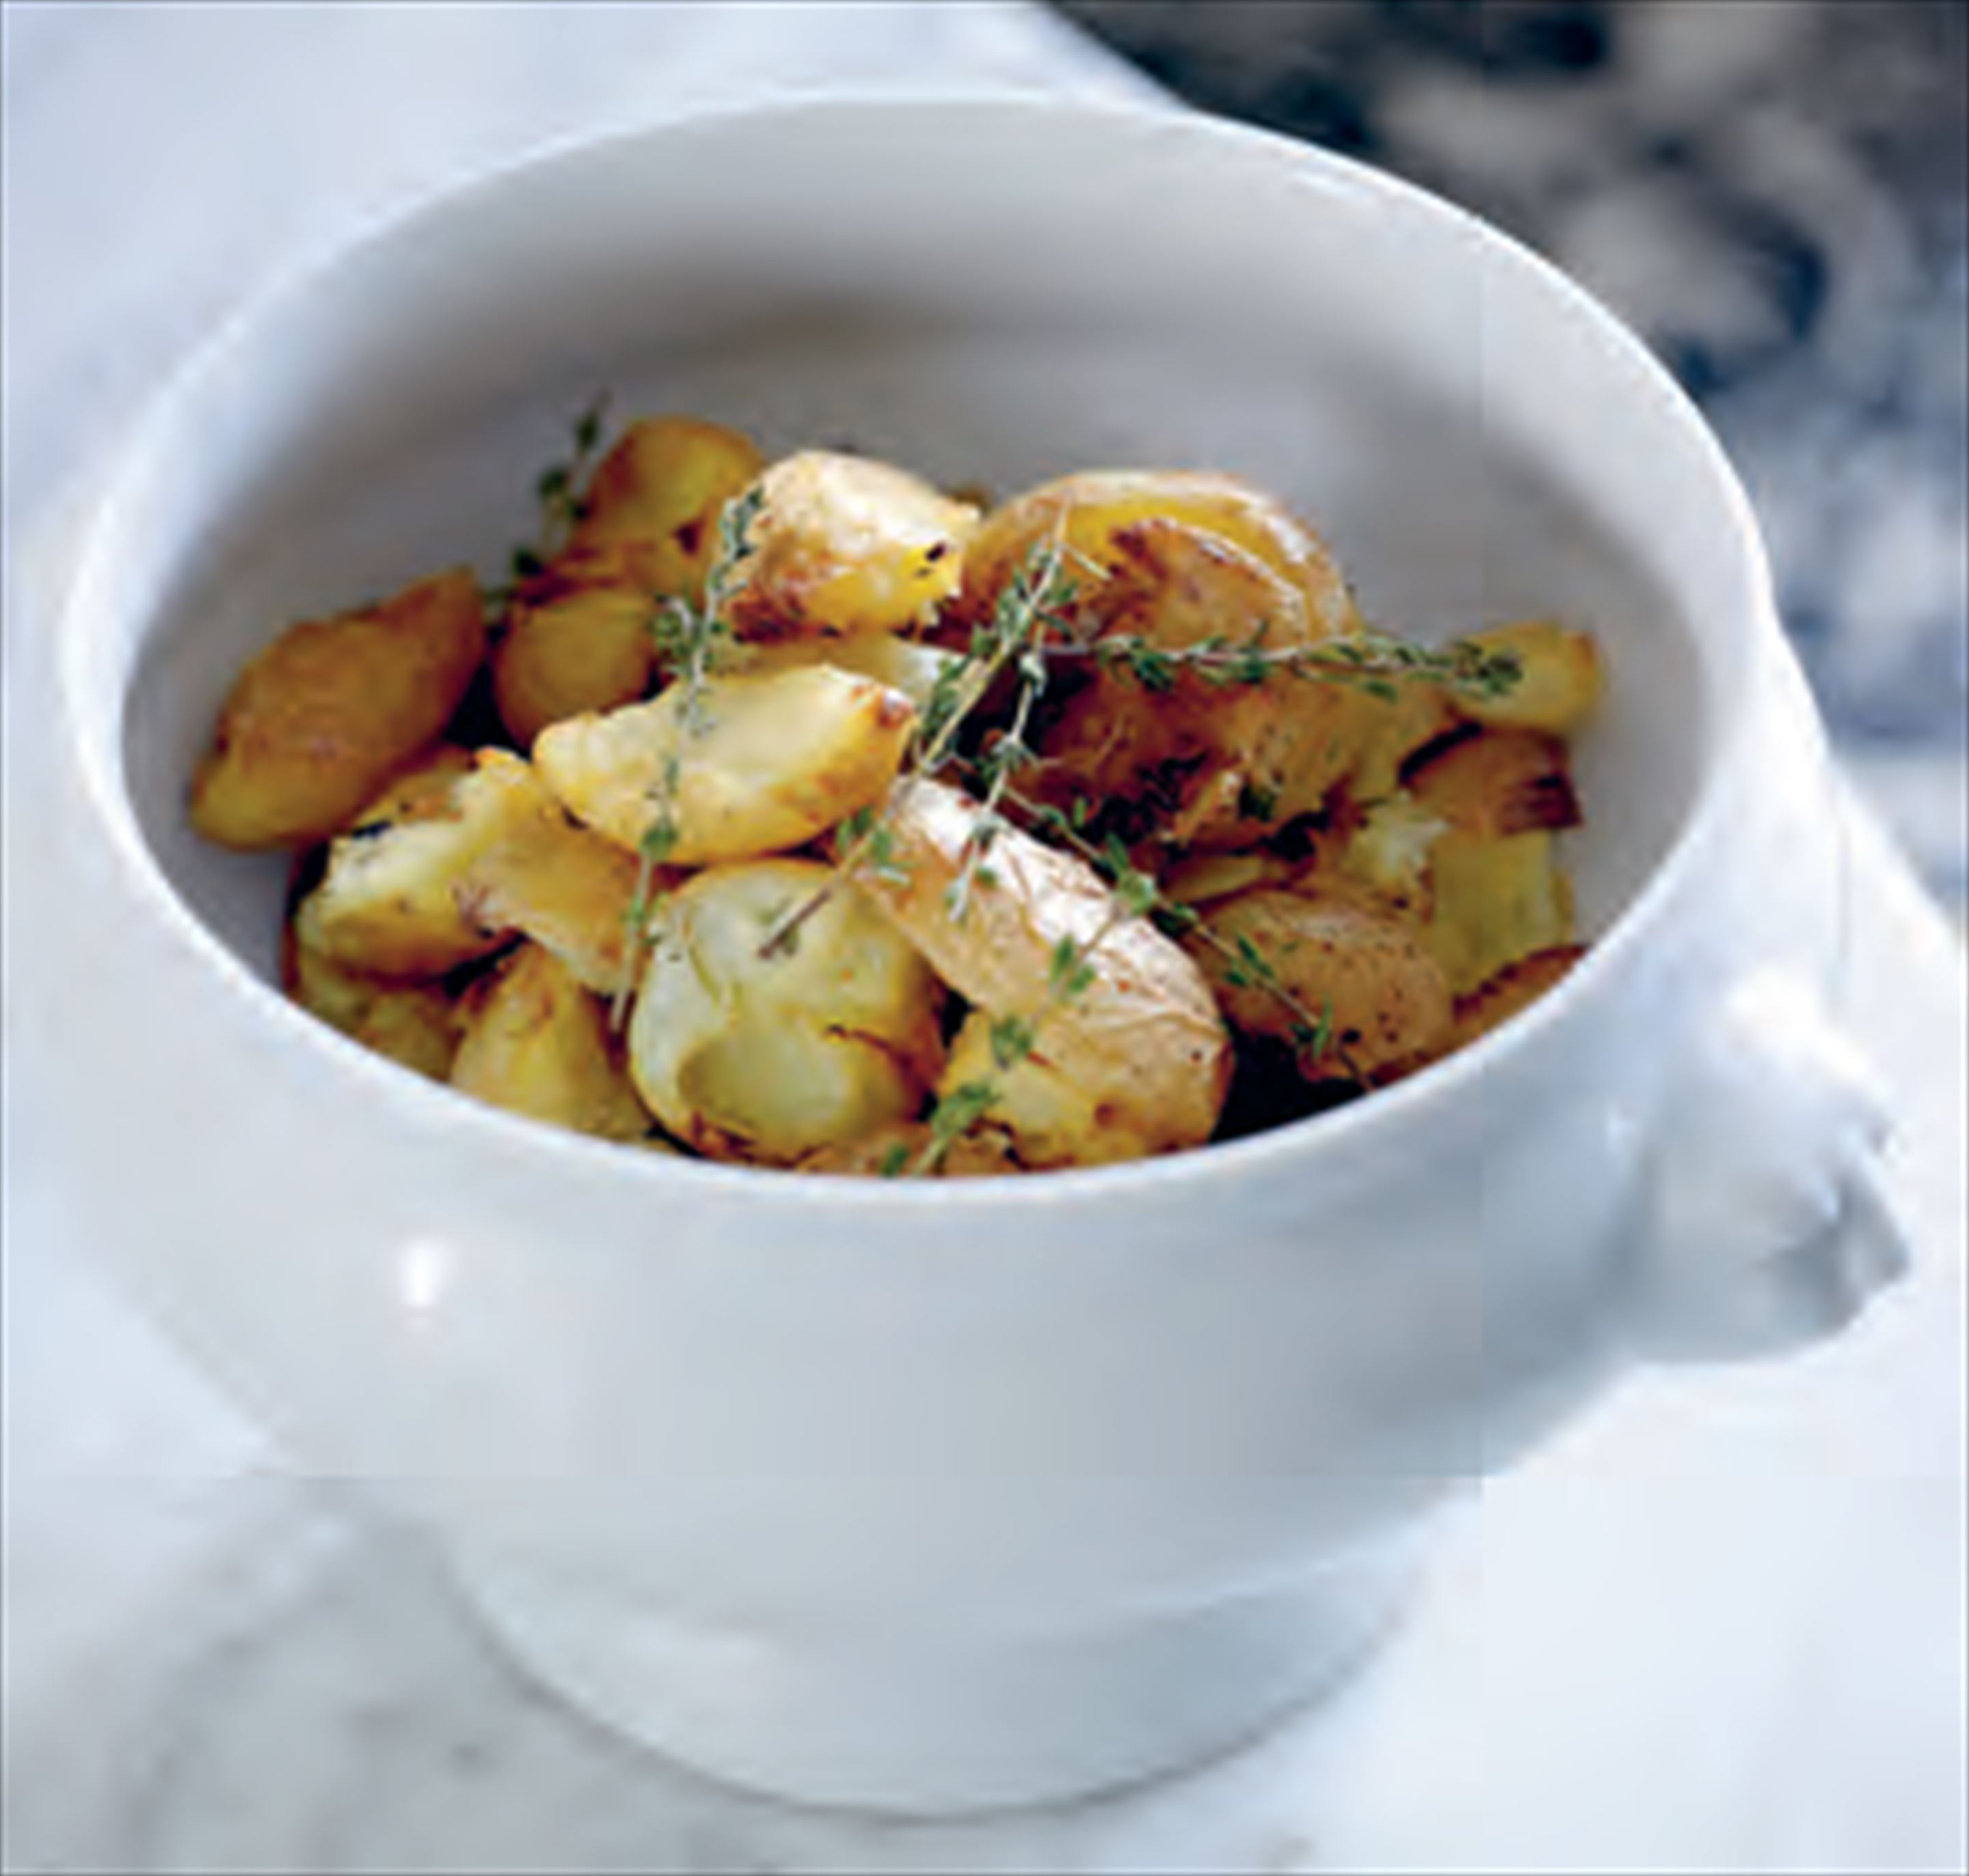 Roasted new potatoes with garlic and thyme